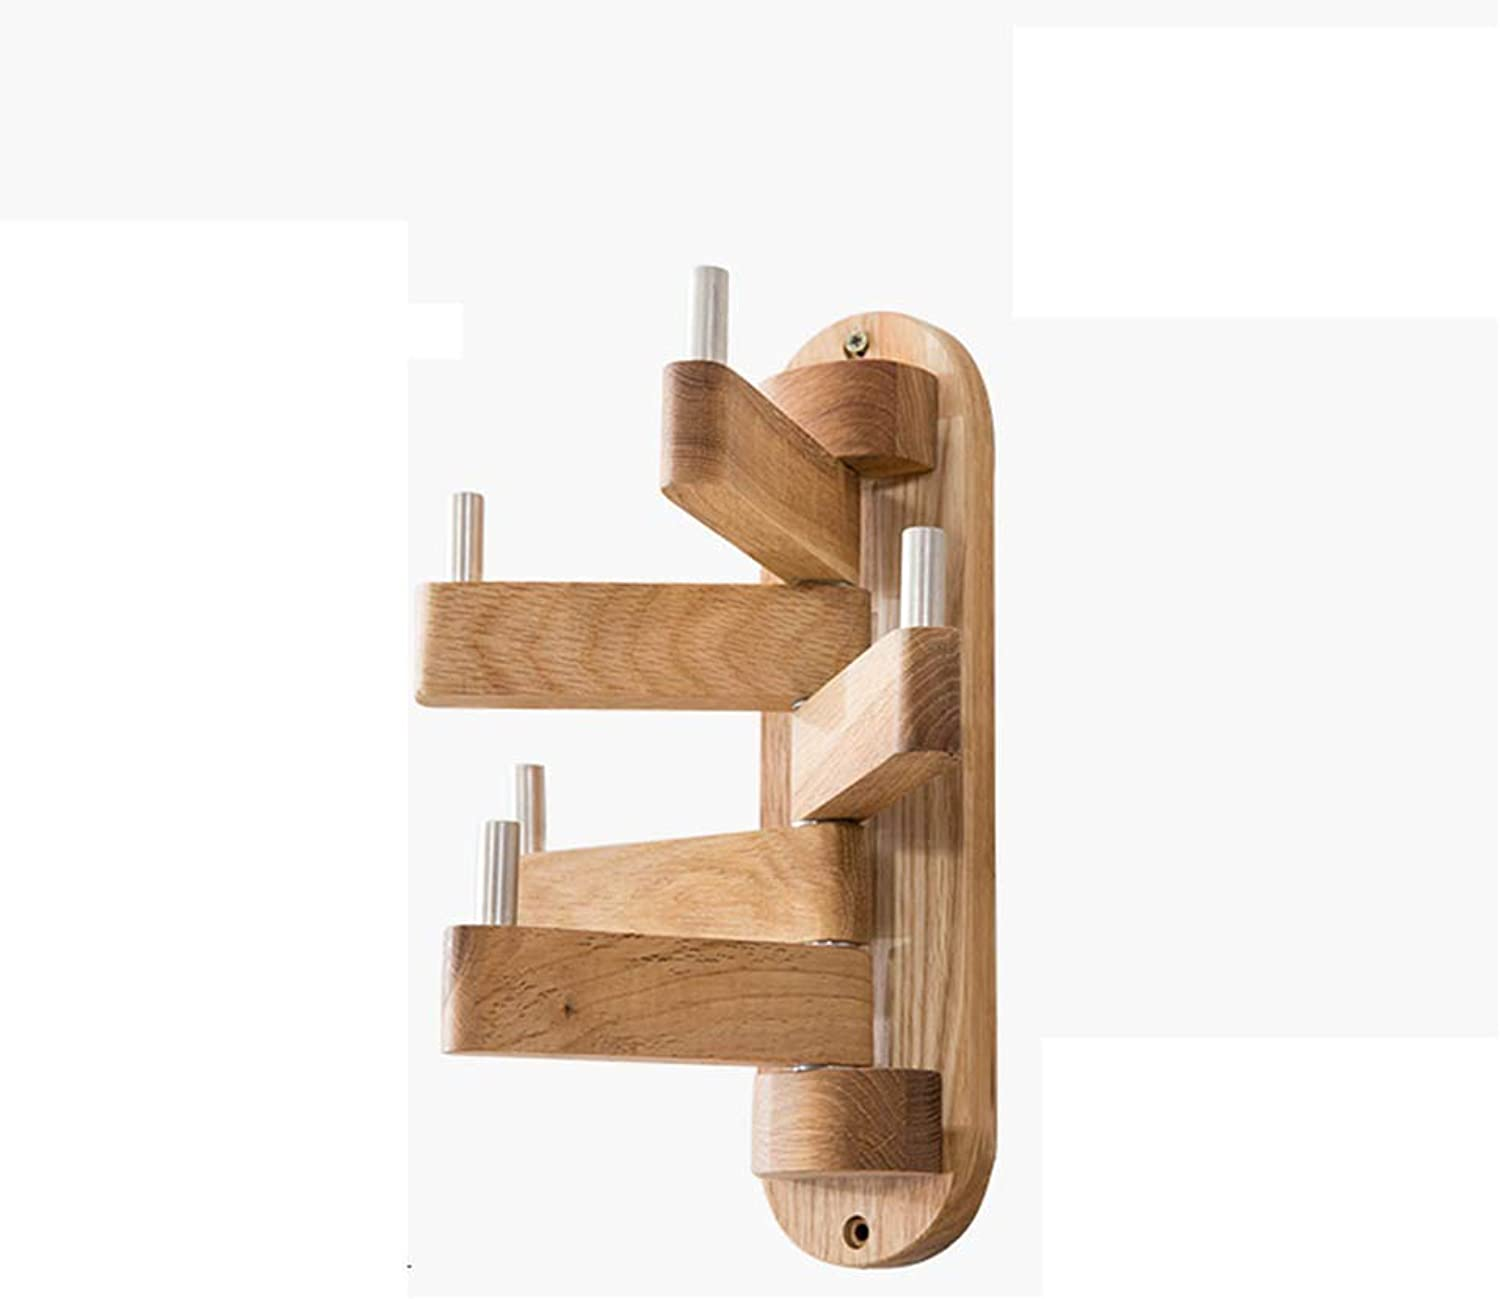 Nordic Simple Solid Wood redating Clothes Hanging Bedroom Wall Hanging Tree coat rack Five Hook Strong Storage Hanger 30  25cm